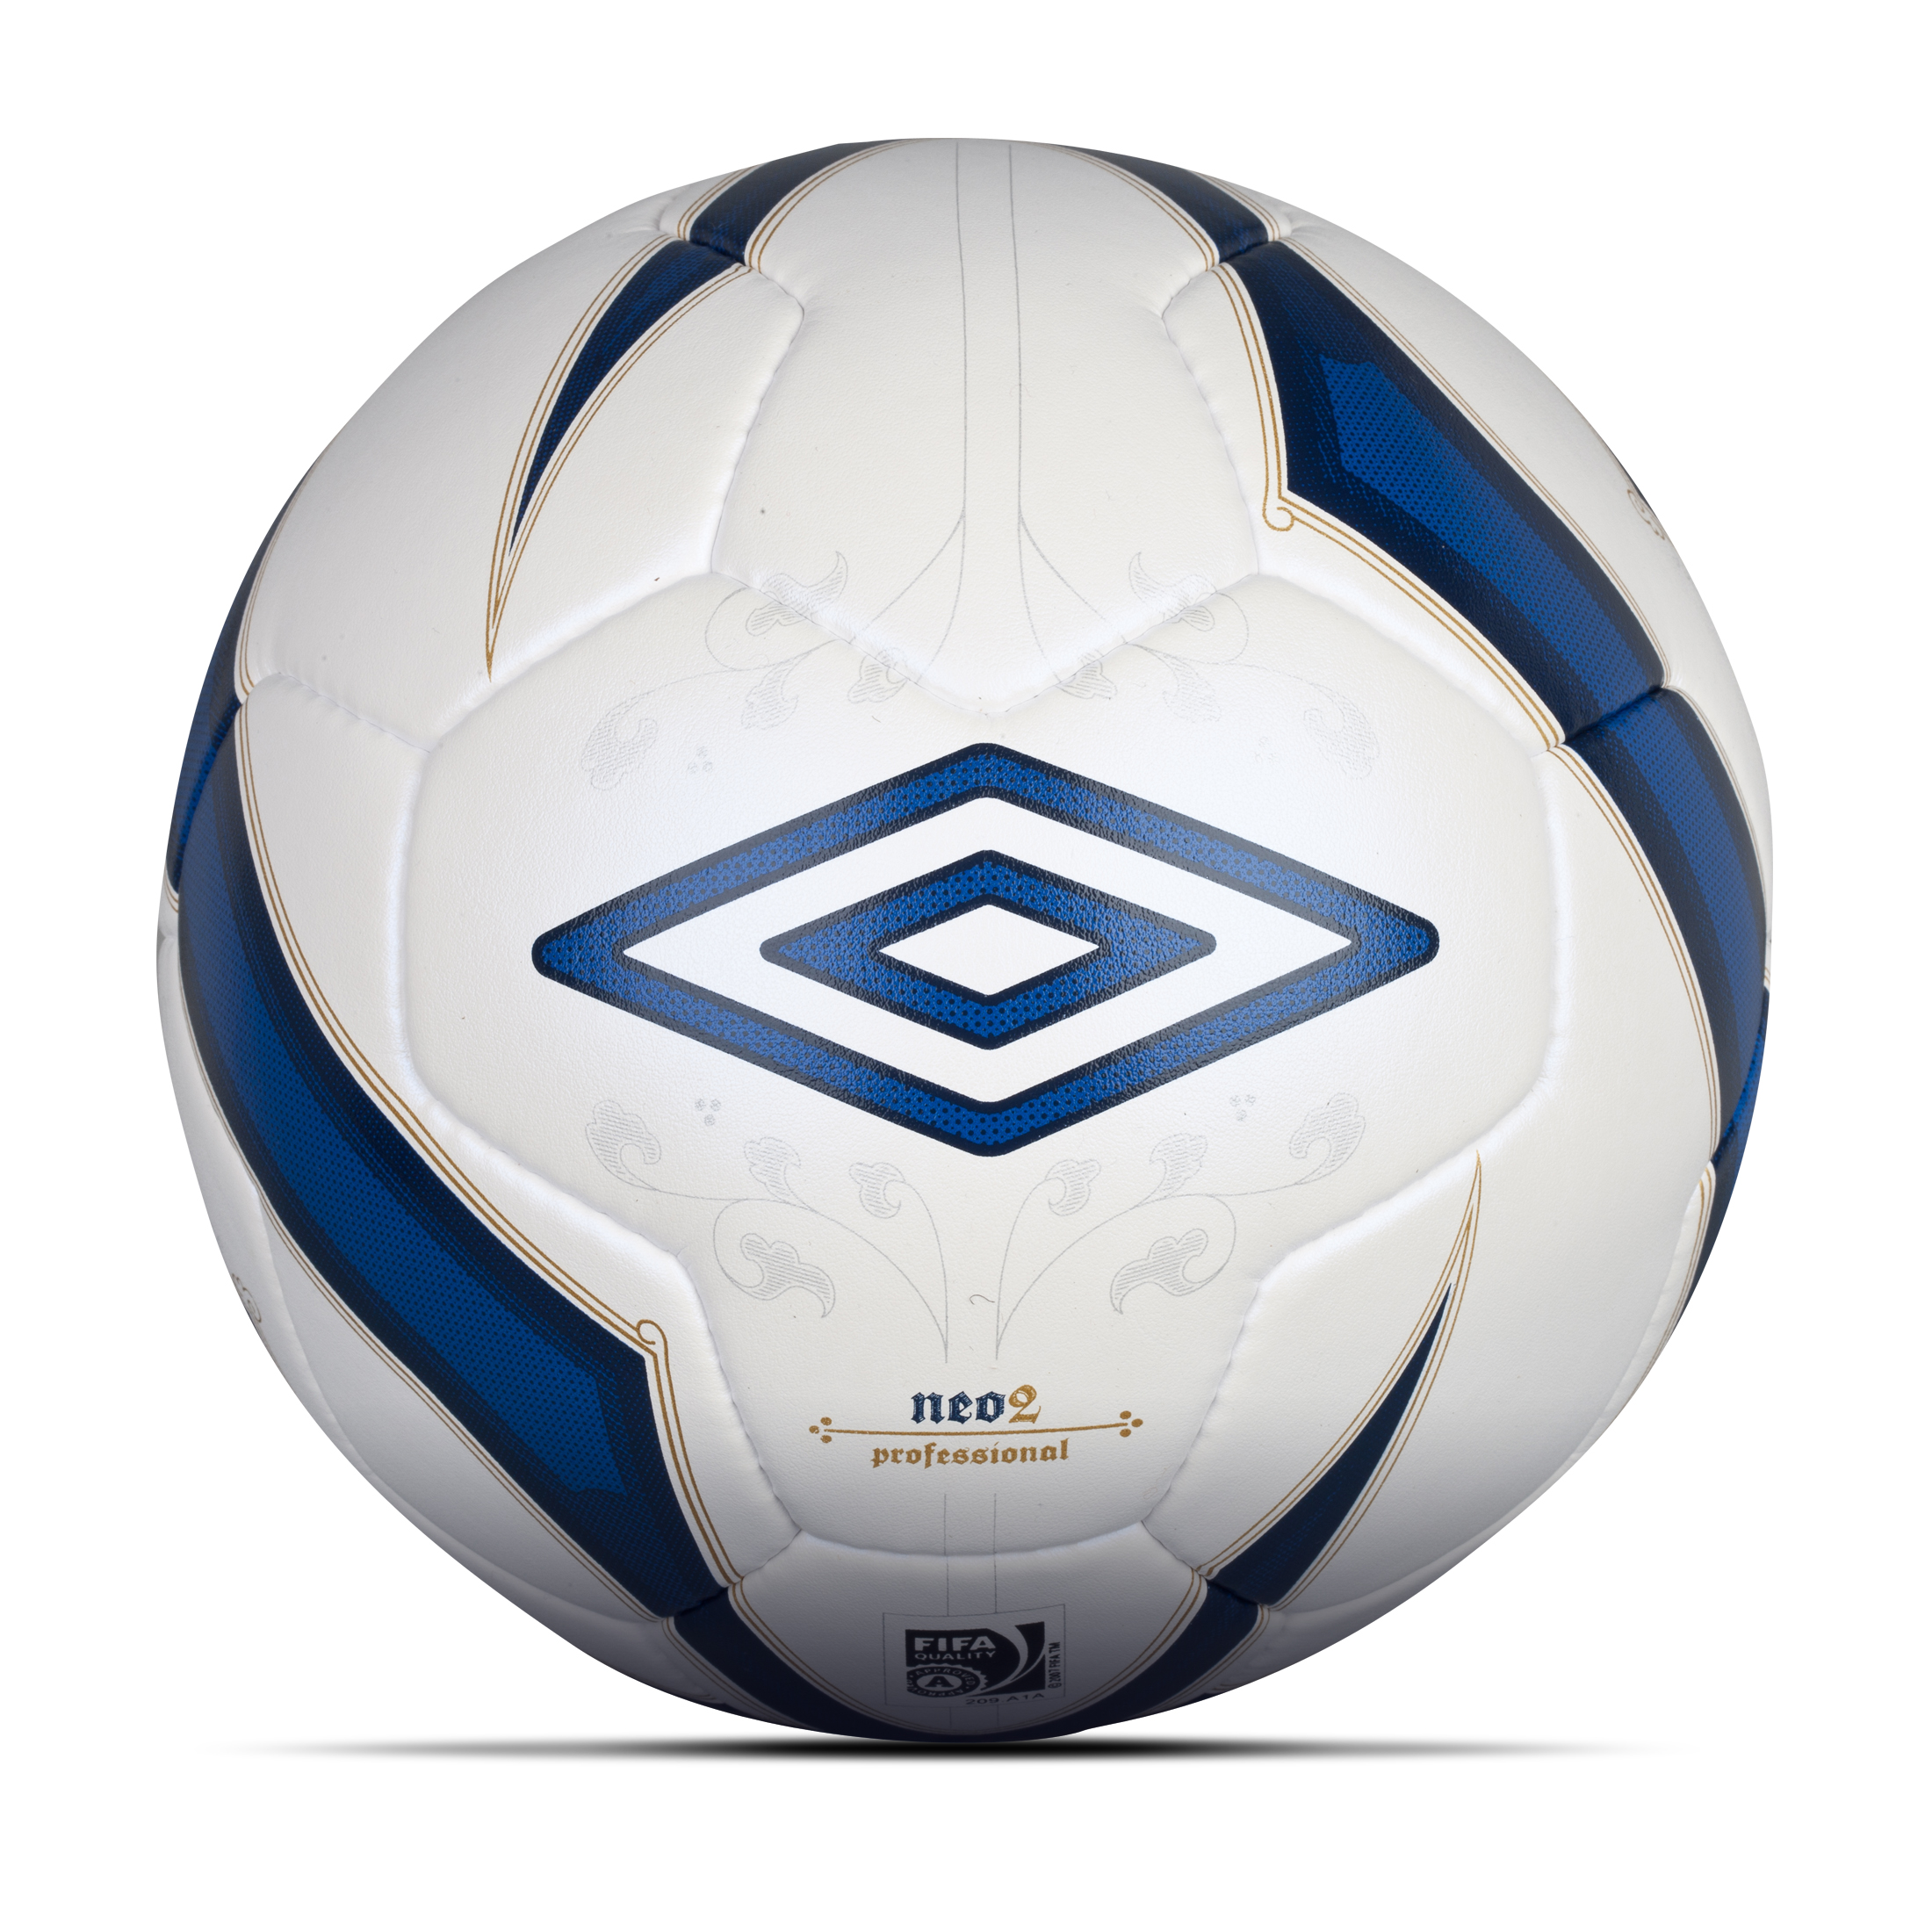 Umbro Neo 2 Pro Football-White / Twilight Blue / Gold